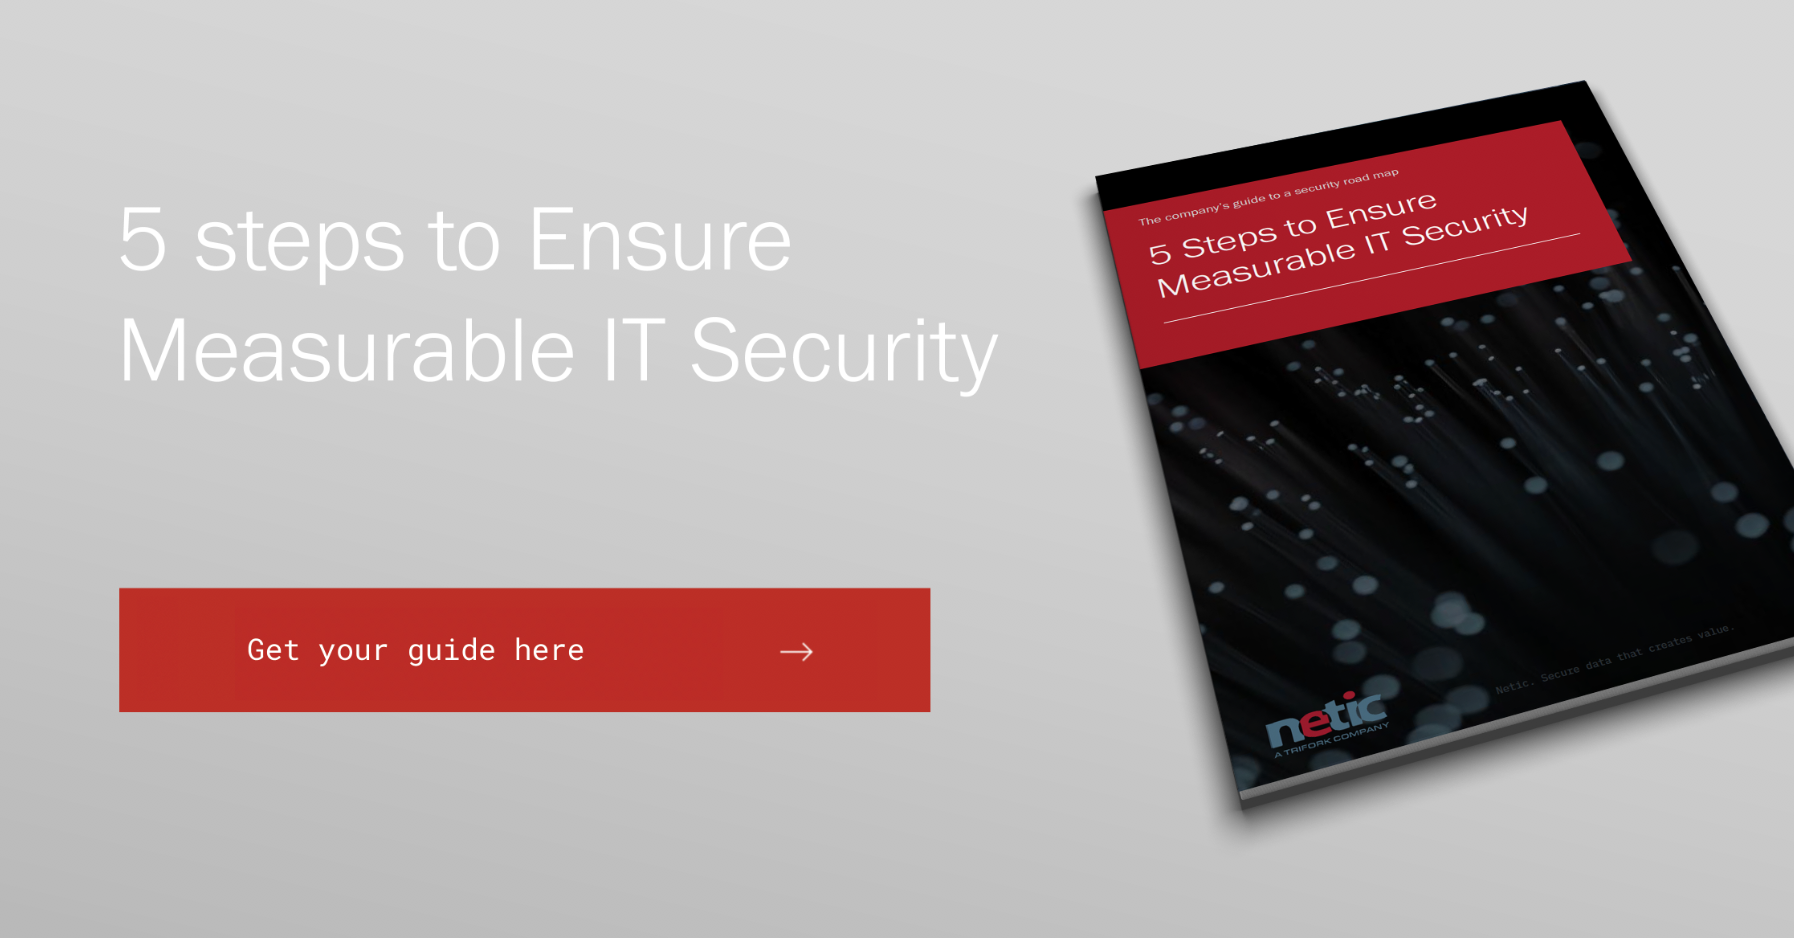 5 Steps to Ensure Measurable IT Security